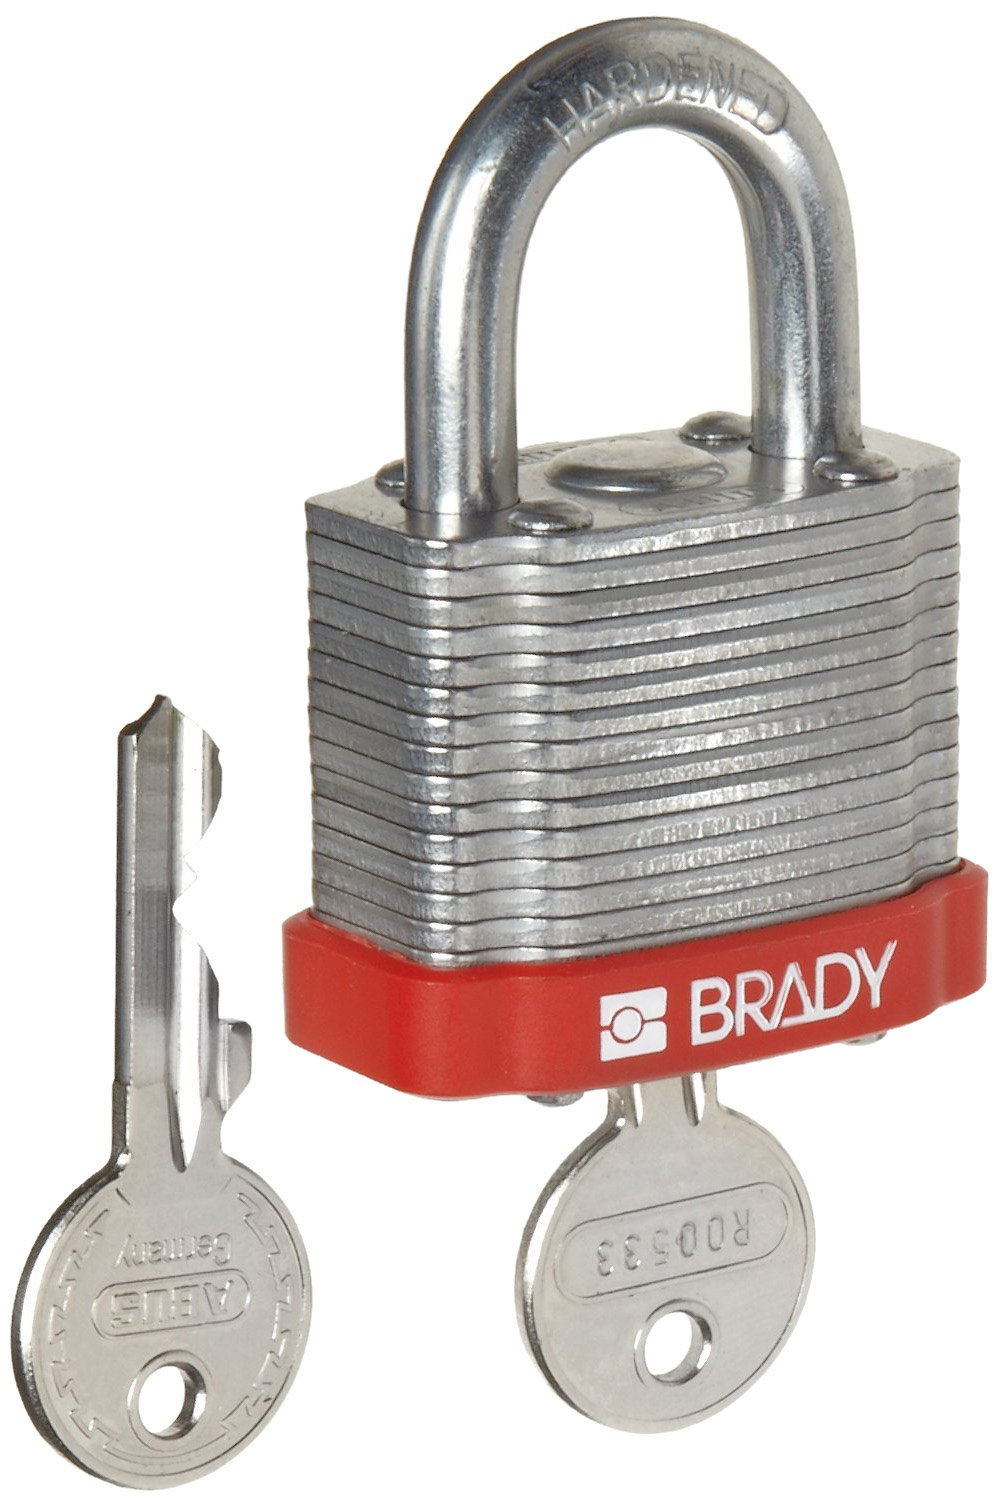 Brady Steel Lockout/Tagout Padlock, Keyed Different, 1-1/3'' Body Length, 3/4'' Shackle Clearance, Red (Pack of 6)